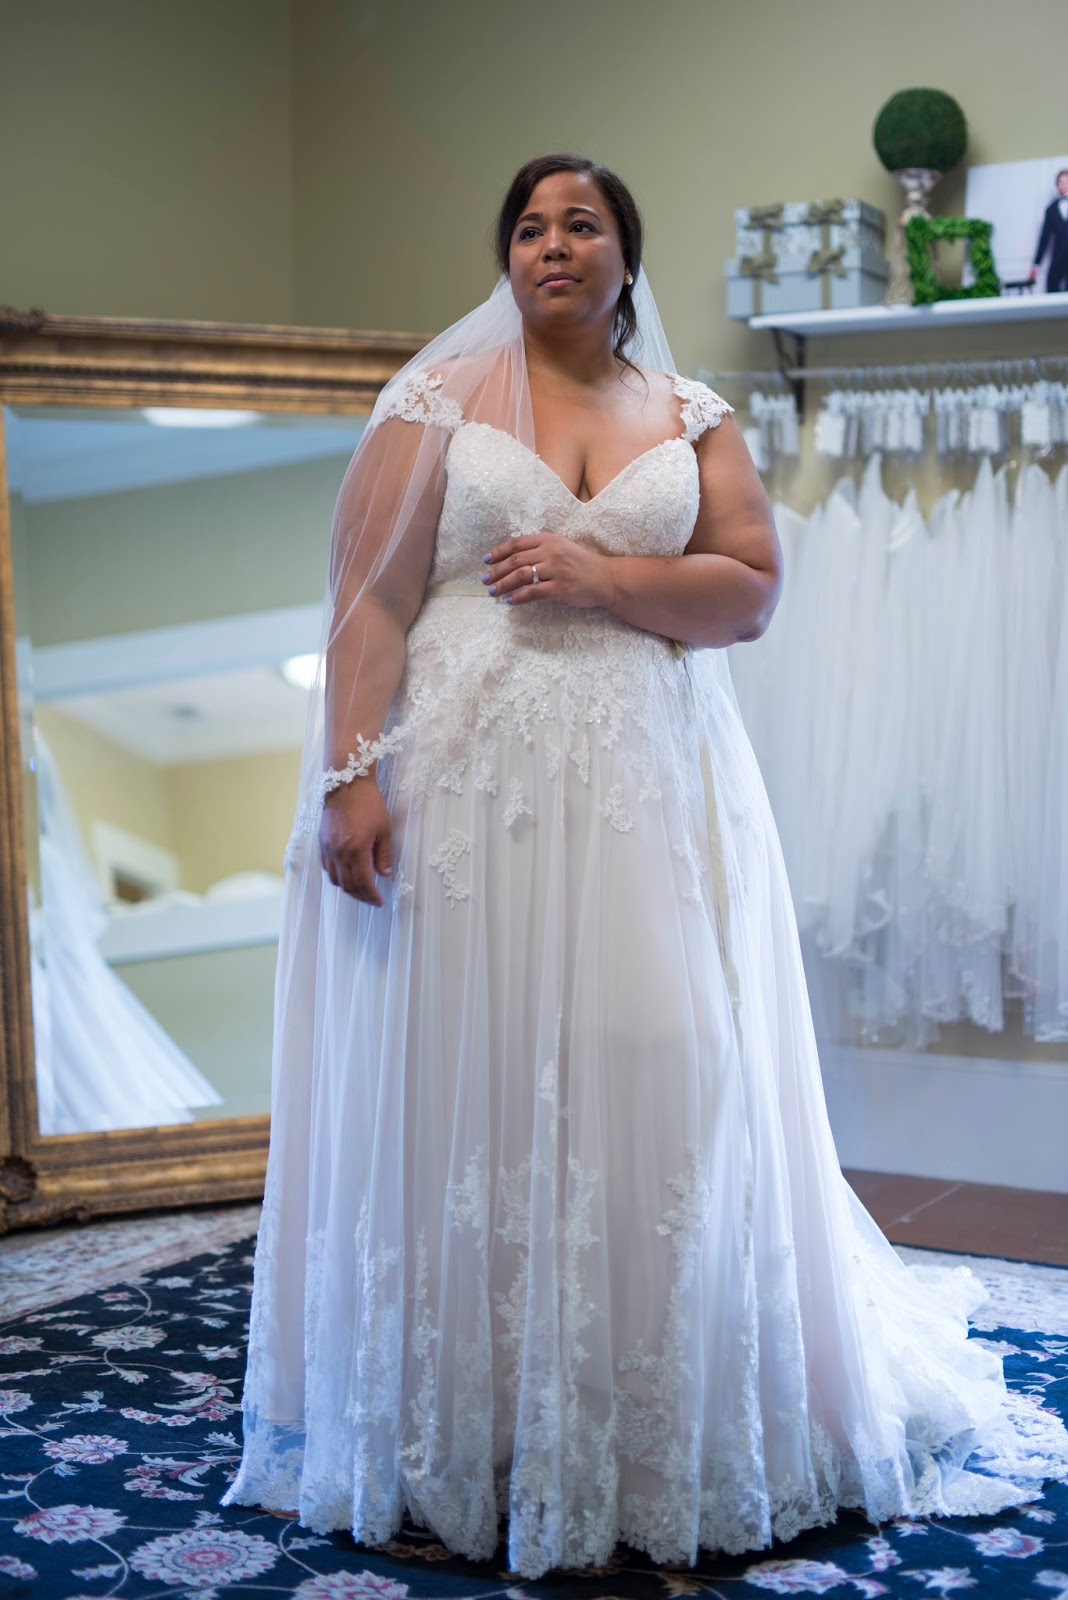 Plus Size Bridal Shopping Made Easy Garnerstyle